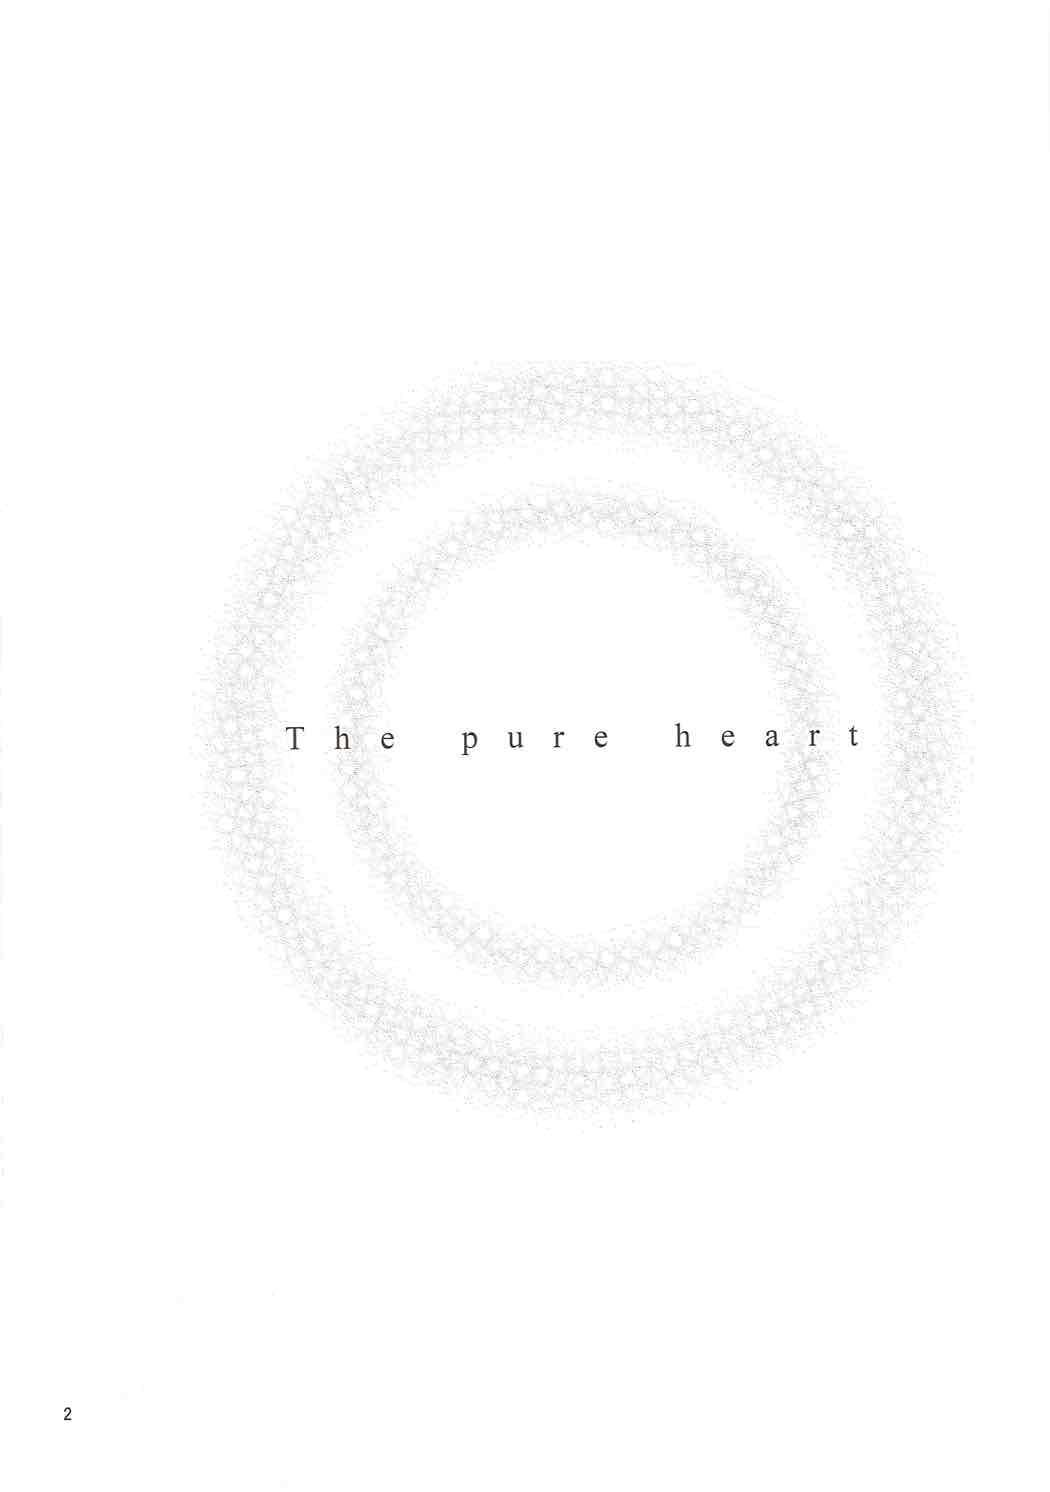 The pure heart 2